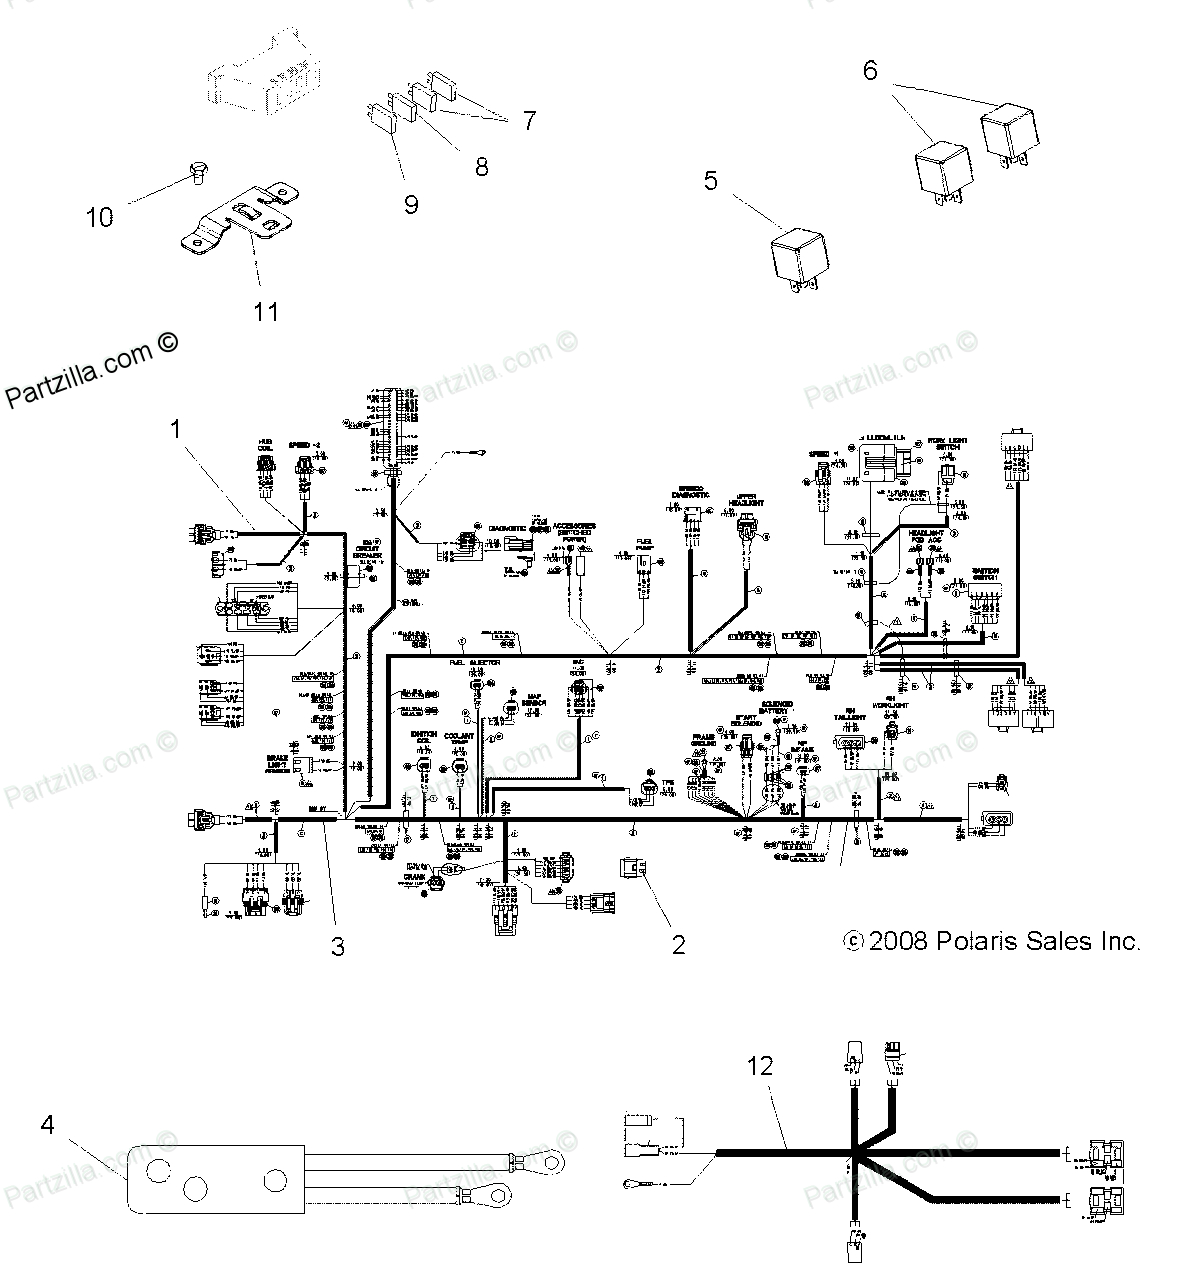 Wiring Diagram Dodge Xplorer from wholefoodsonabudget.com